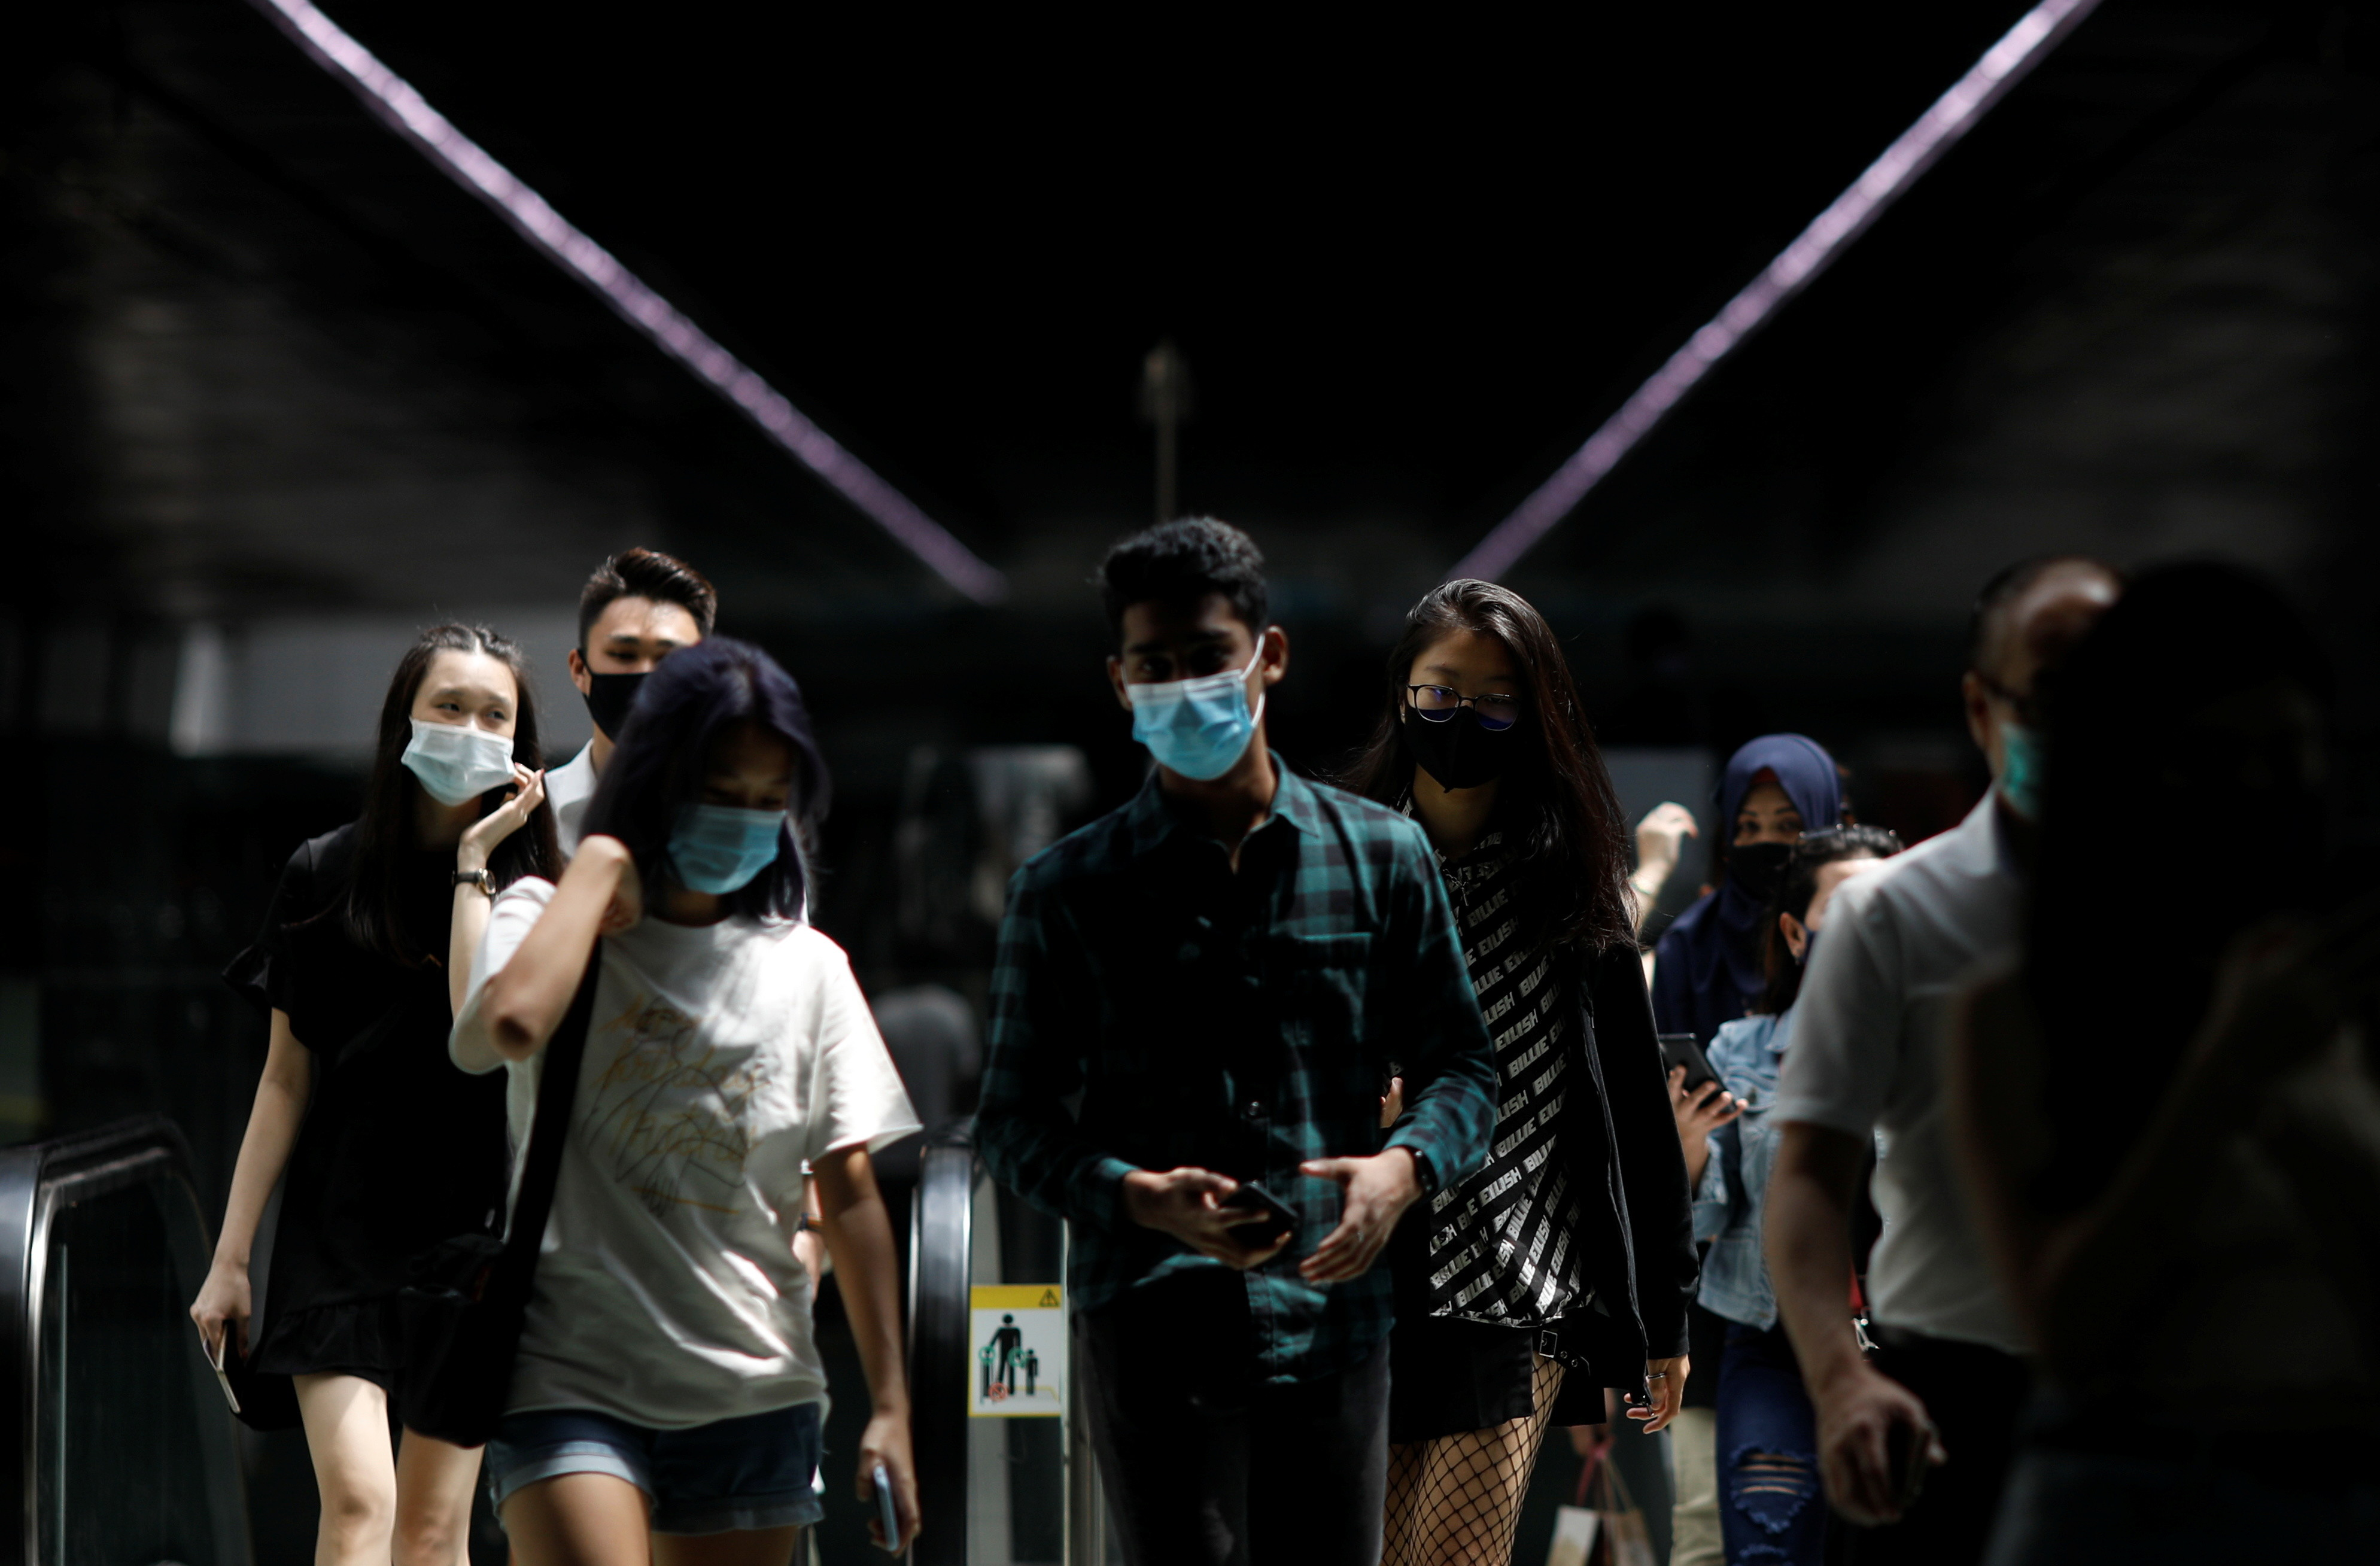 People wearing face masks leave a train station in Singapore December 8, 2020.  REUTERS/Edgar Su - RC2WIK94ELKO